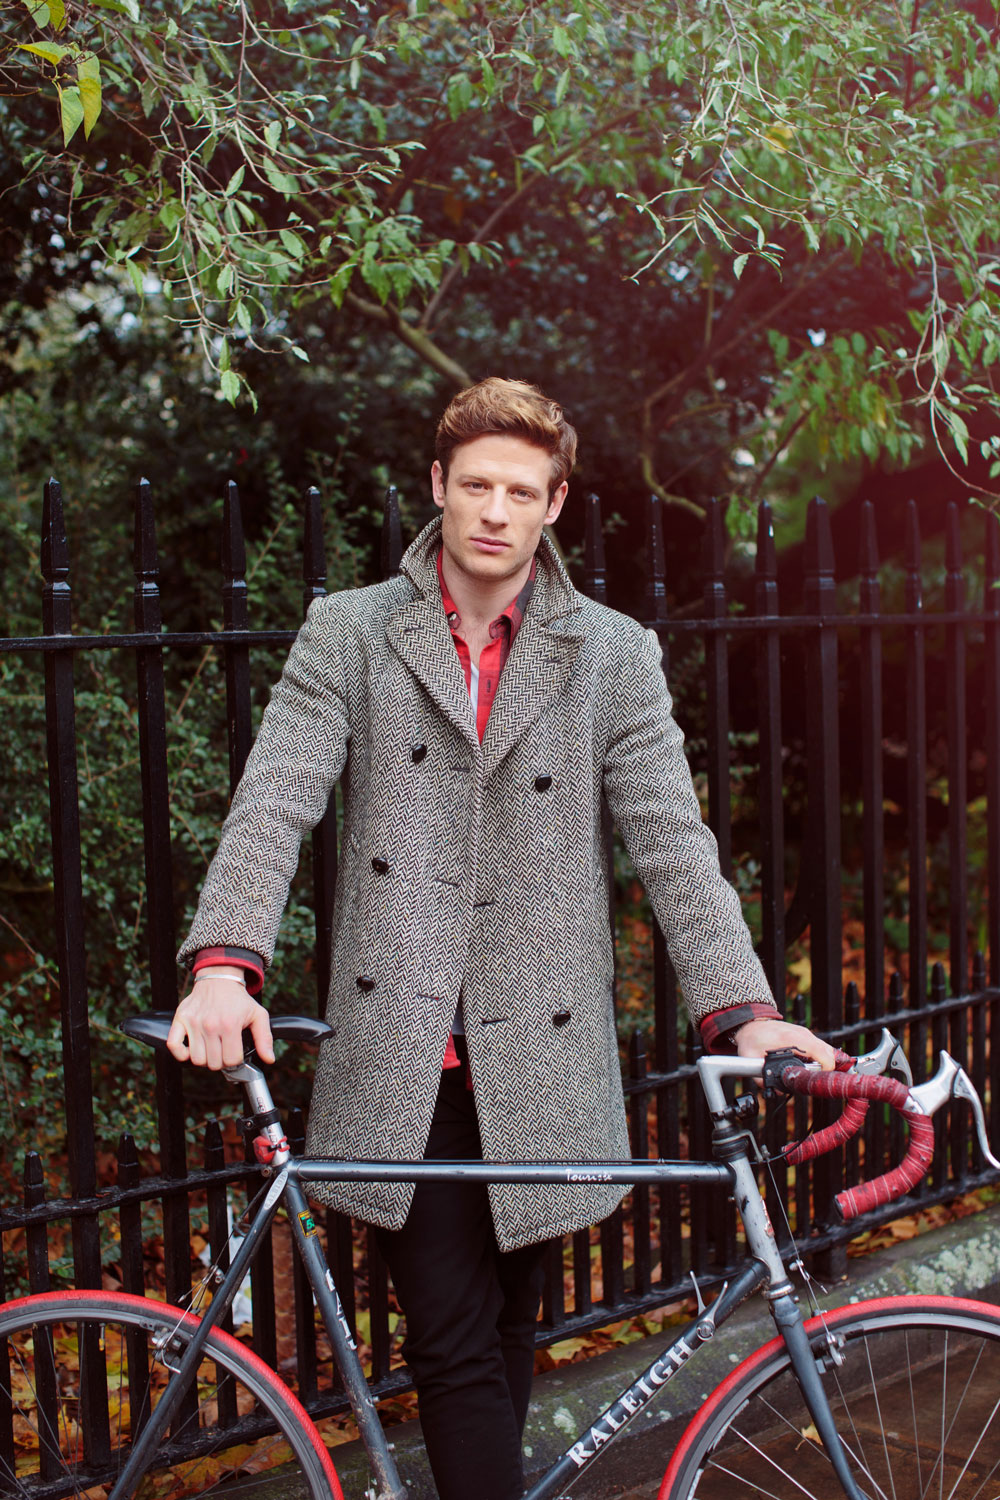 james-norton-redonline.co.uk.jpg